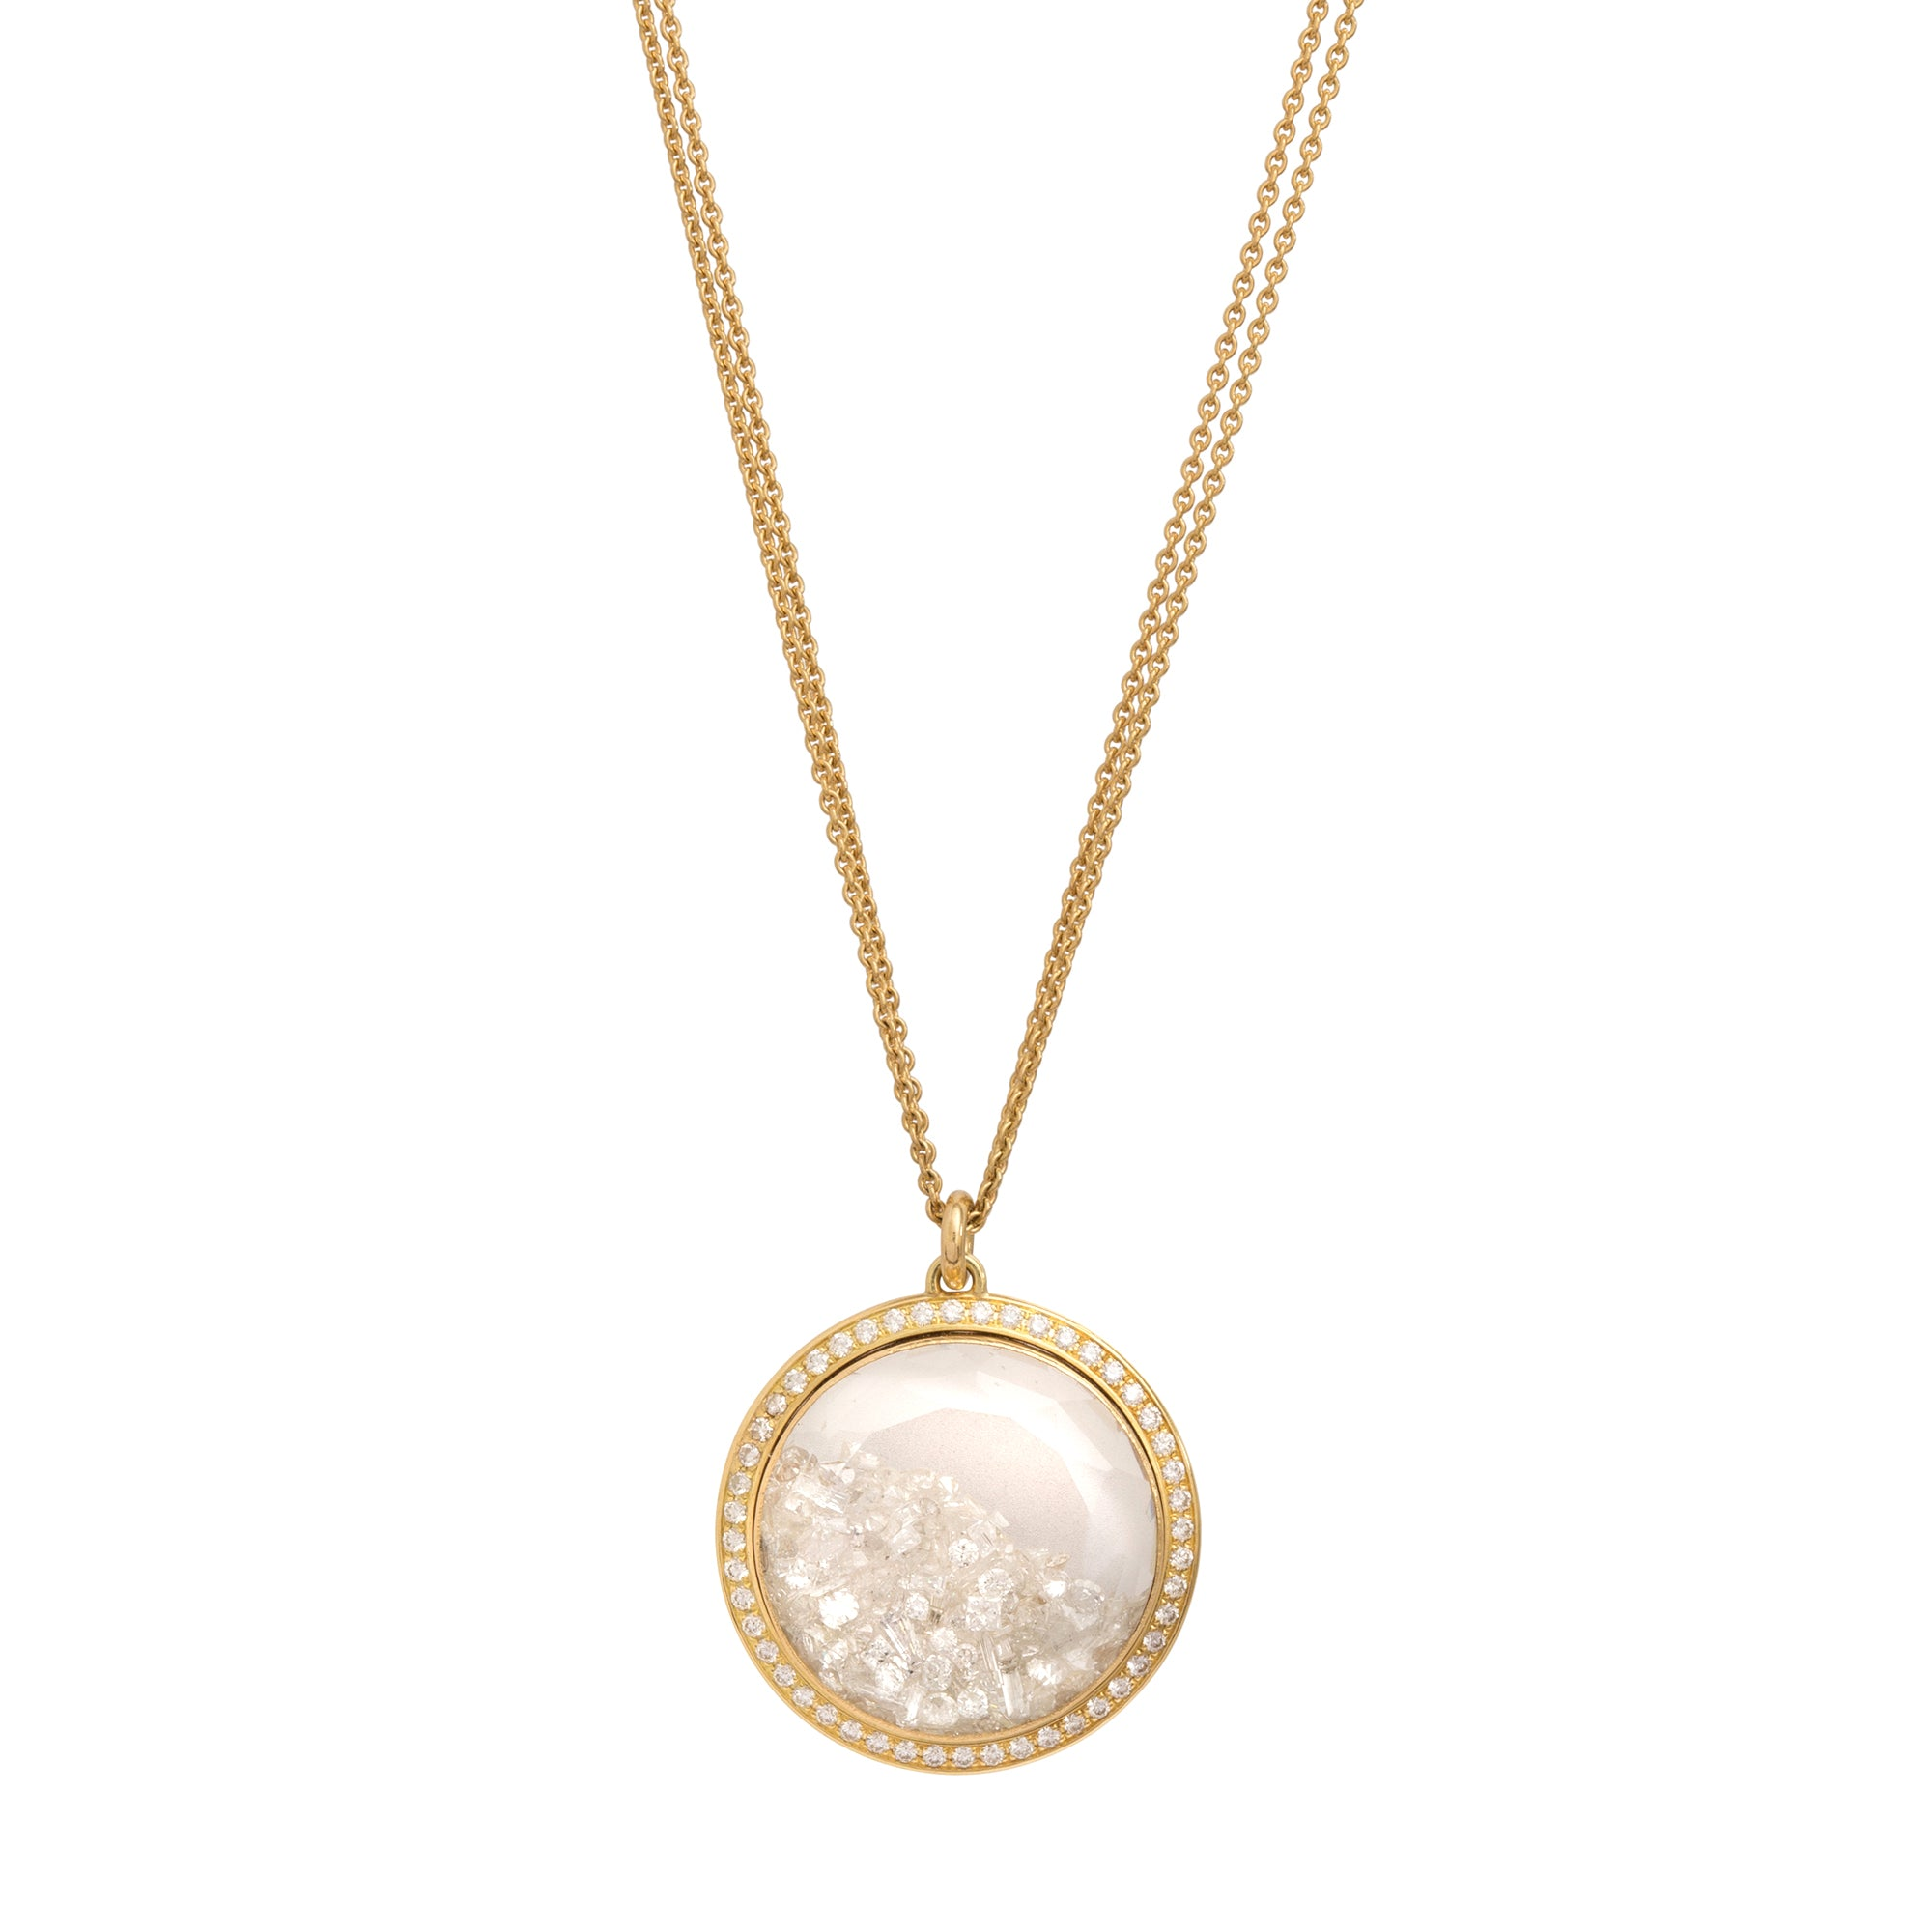 Round Shake Necklace by Renee Lewis for Broken English Jewelry